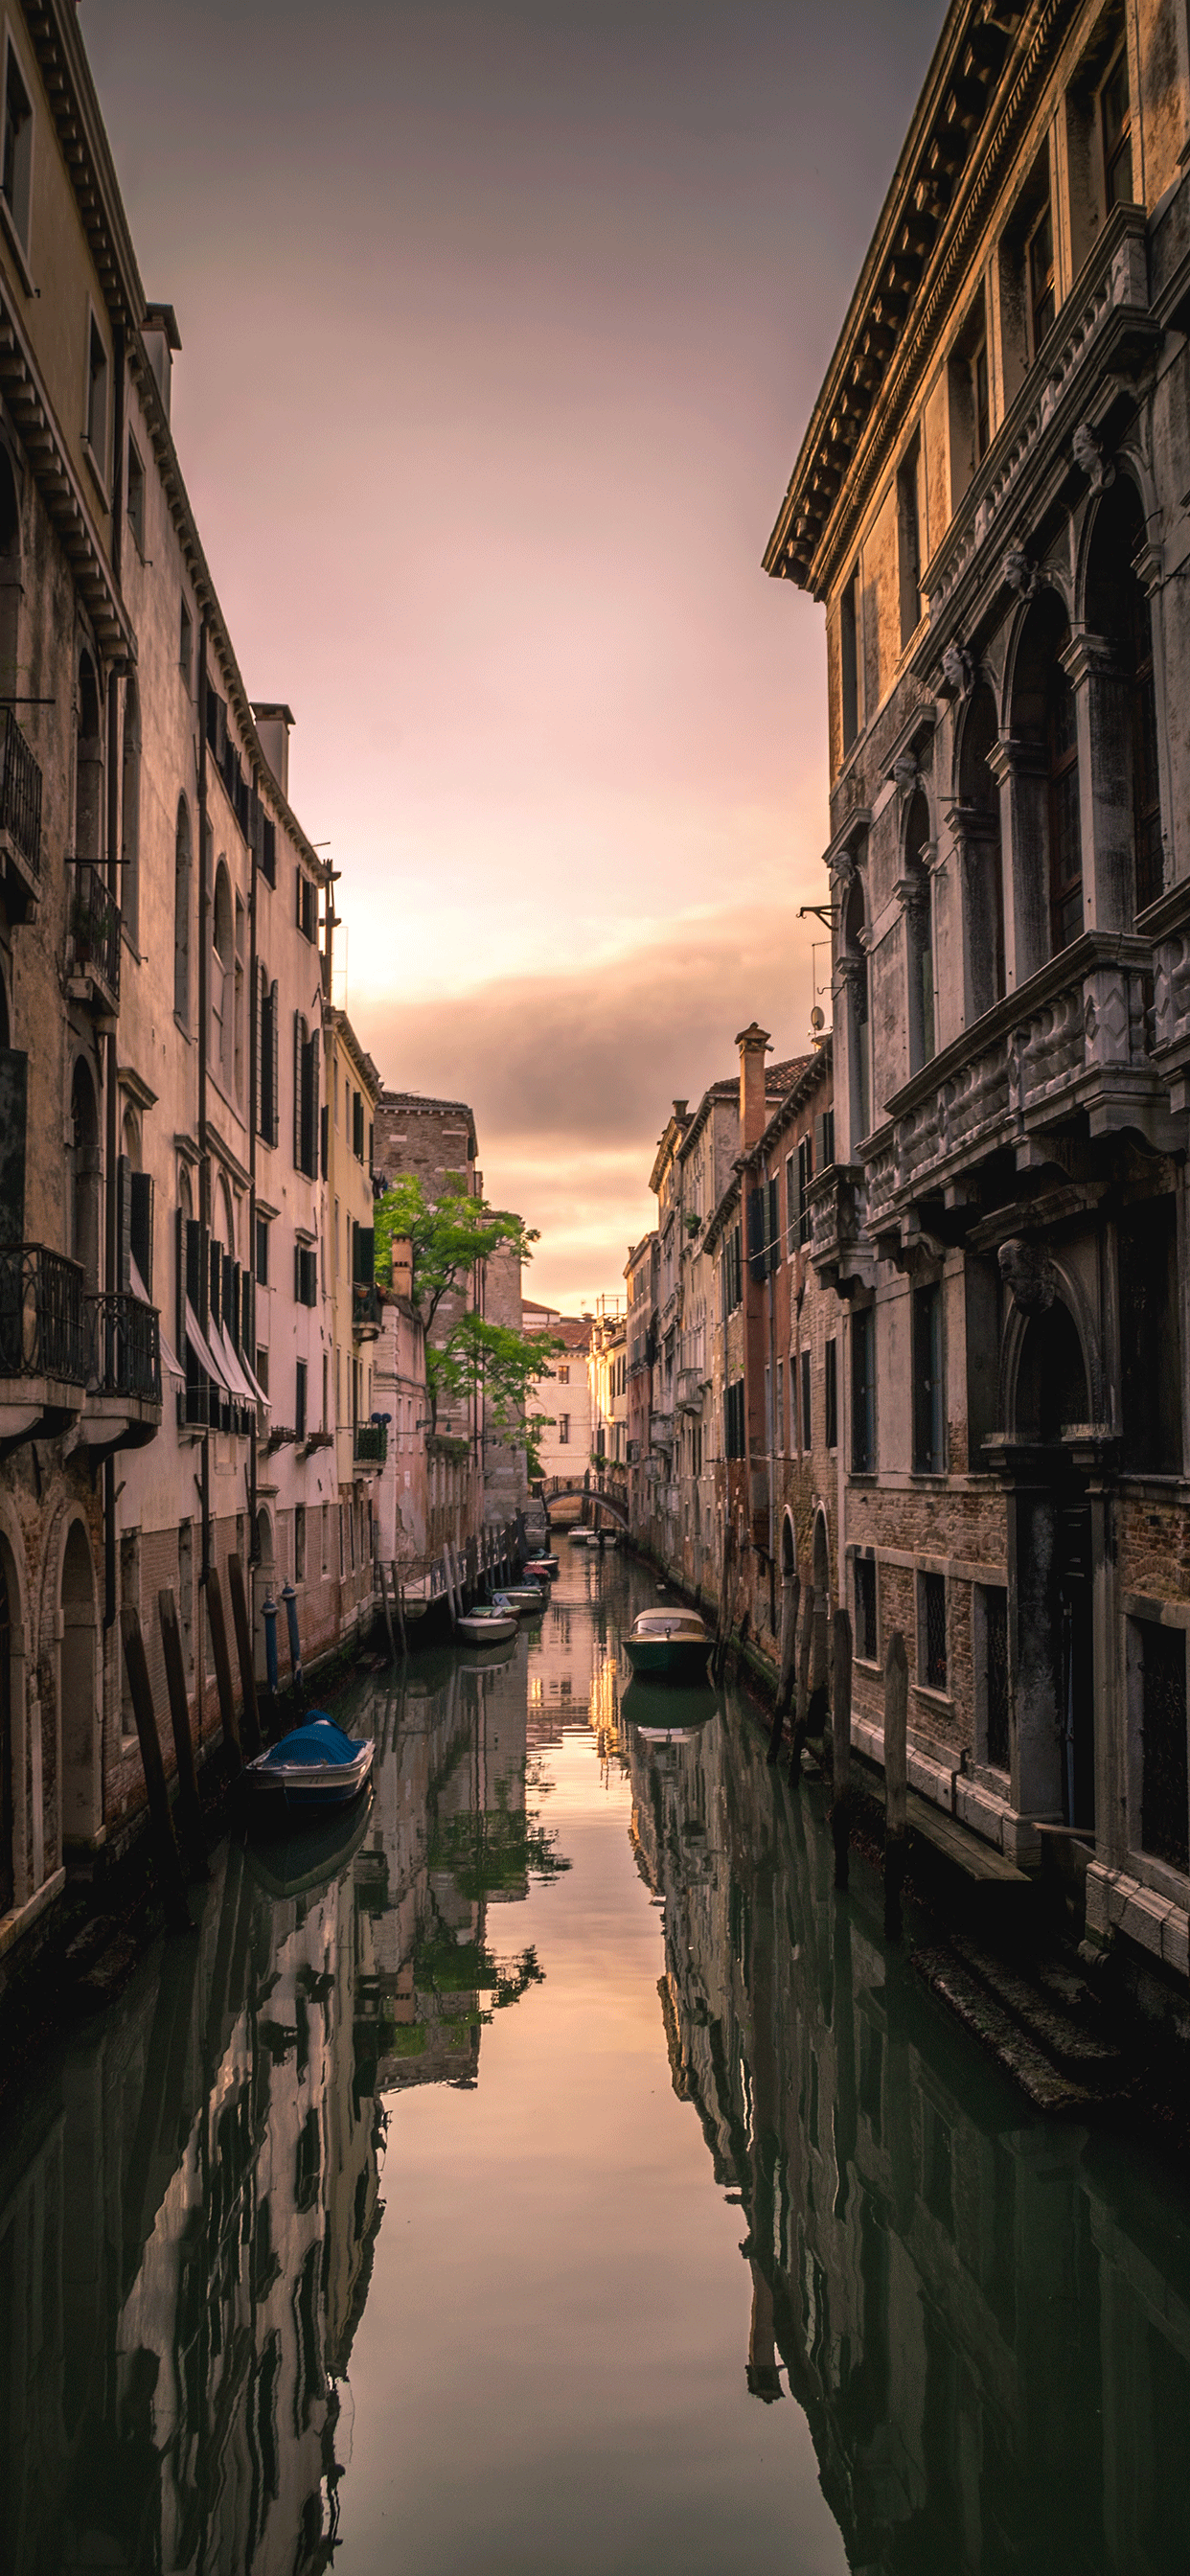 iPhone wallpaper venice sunset Fonds d'écran iPhone du 25/02/2019